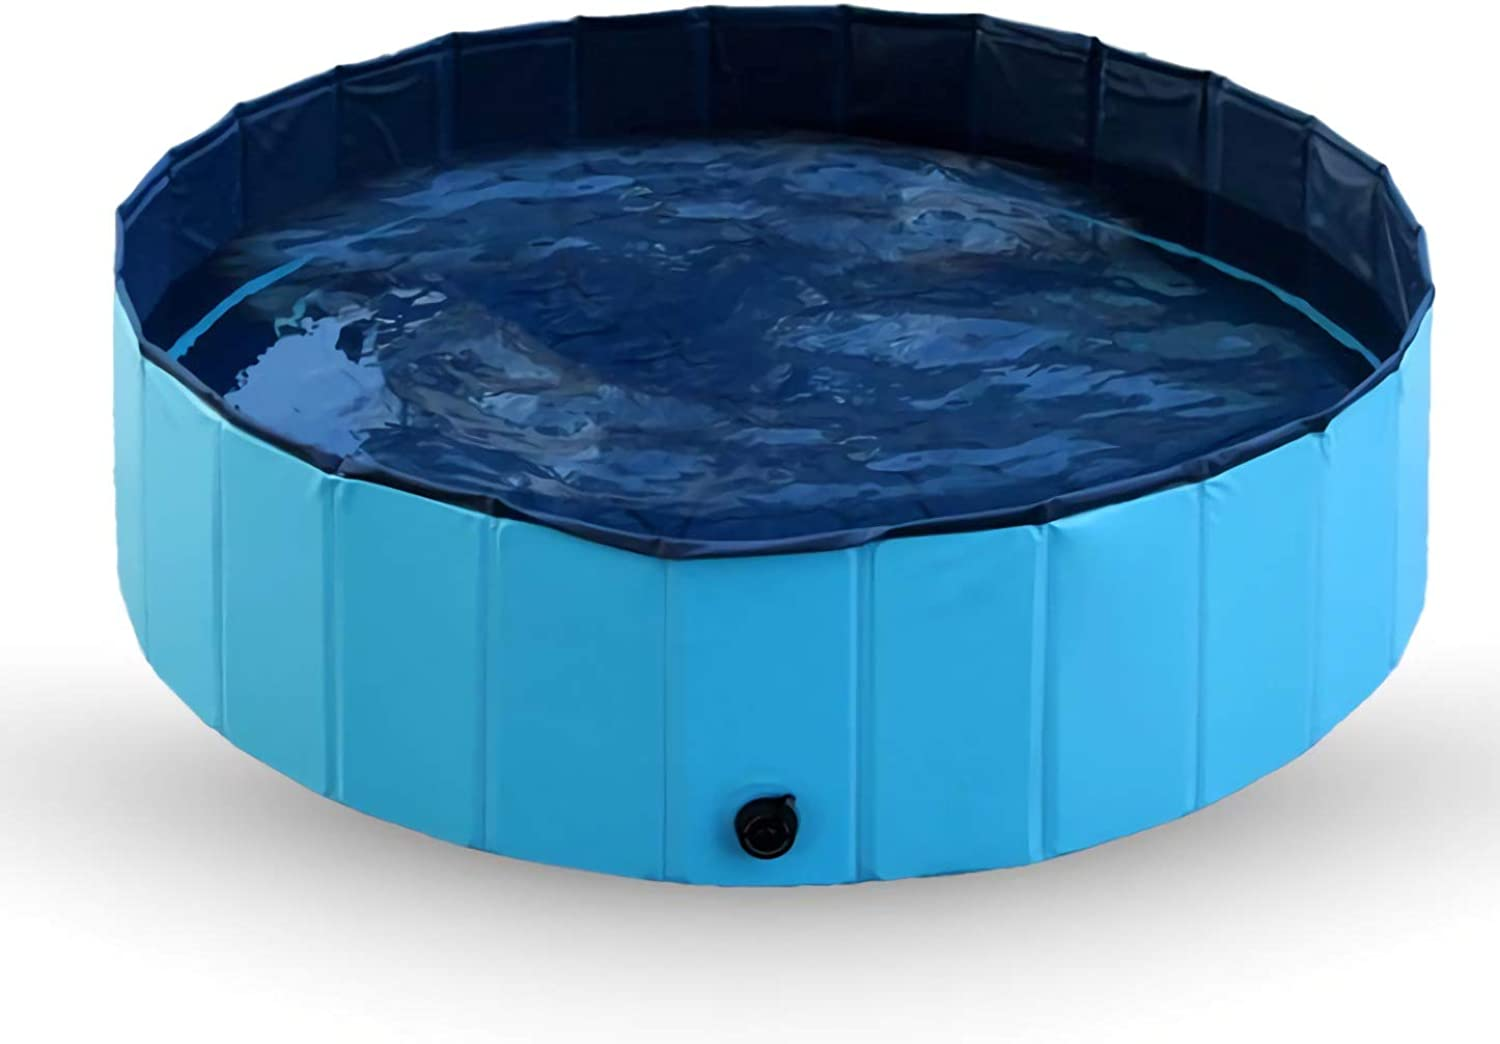 Pet Swimming Pool Portable Foldable Pool  Pet Pool Bathing Tub Kiddie Pool for Dogs Cats and Kids  bluee,S80×20cm